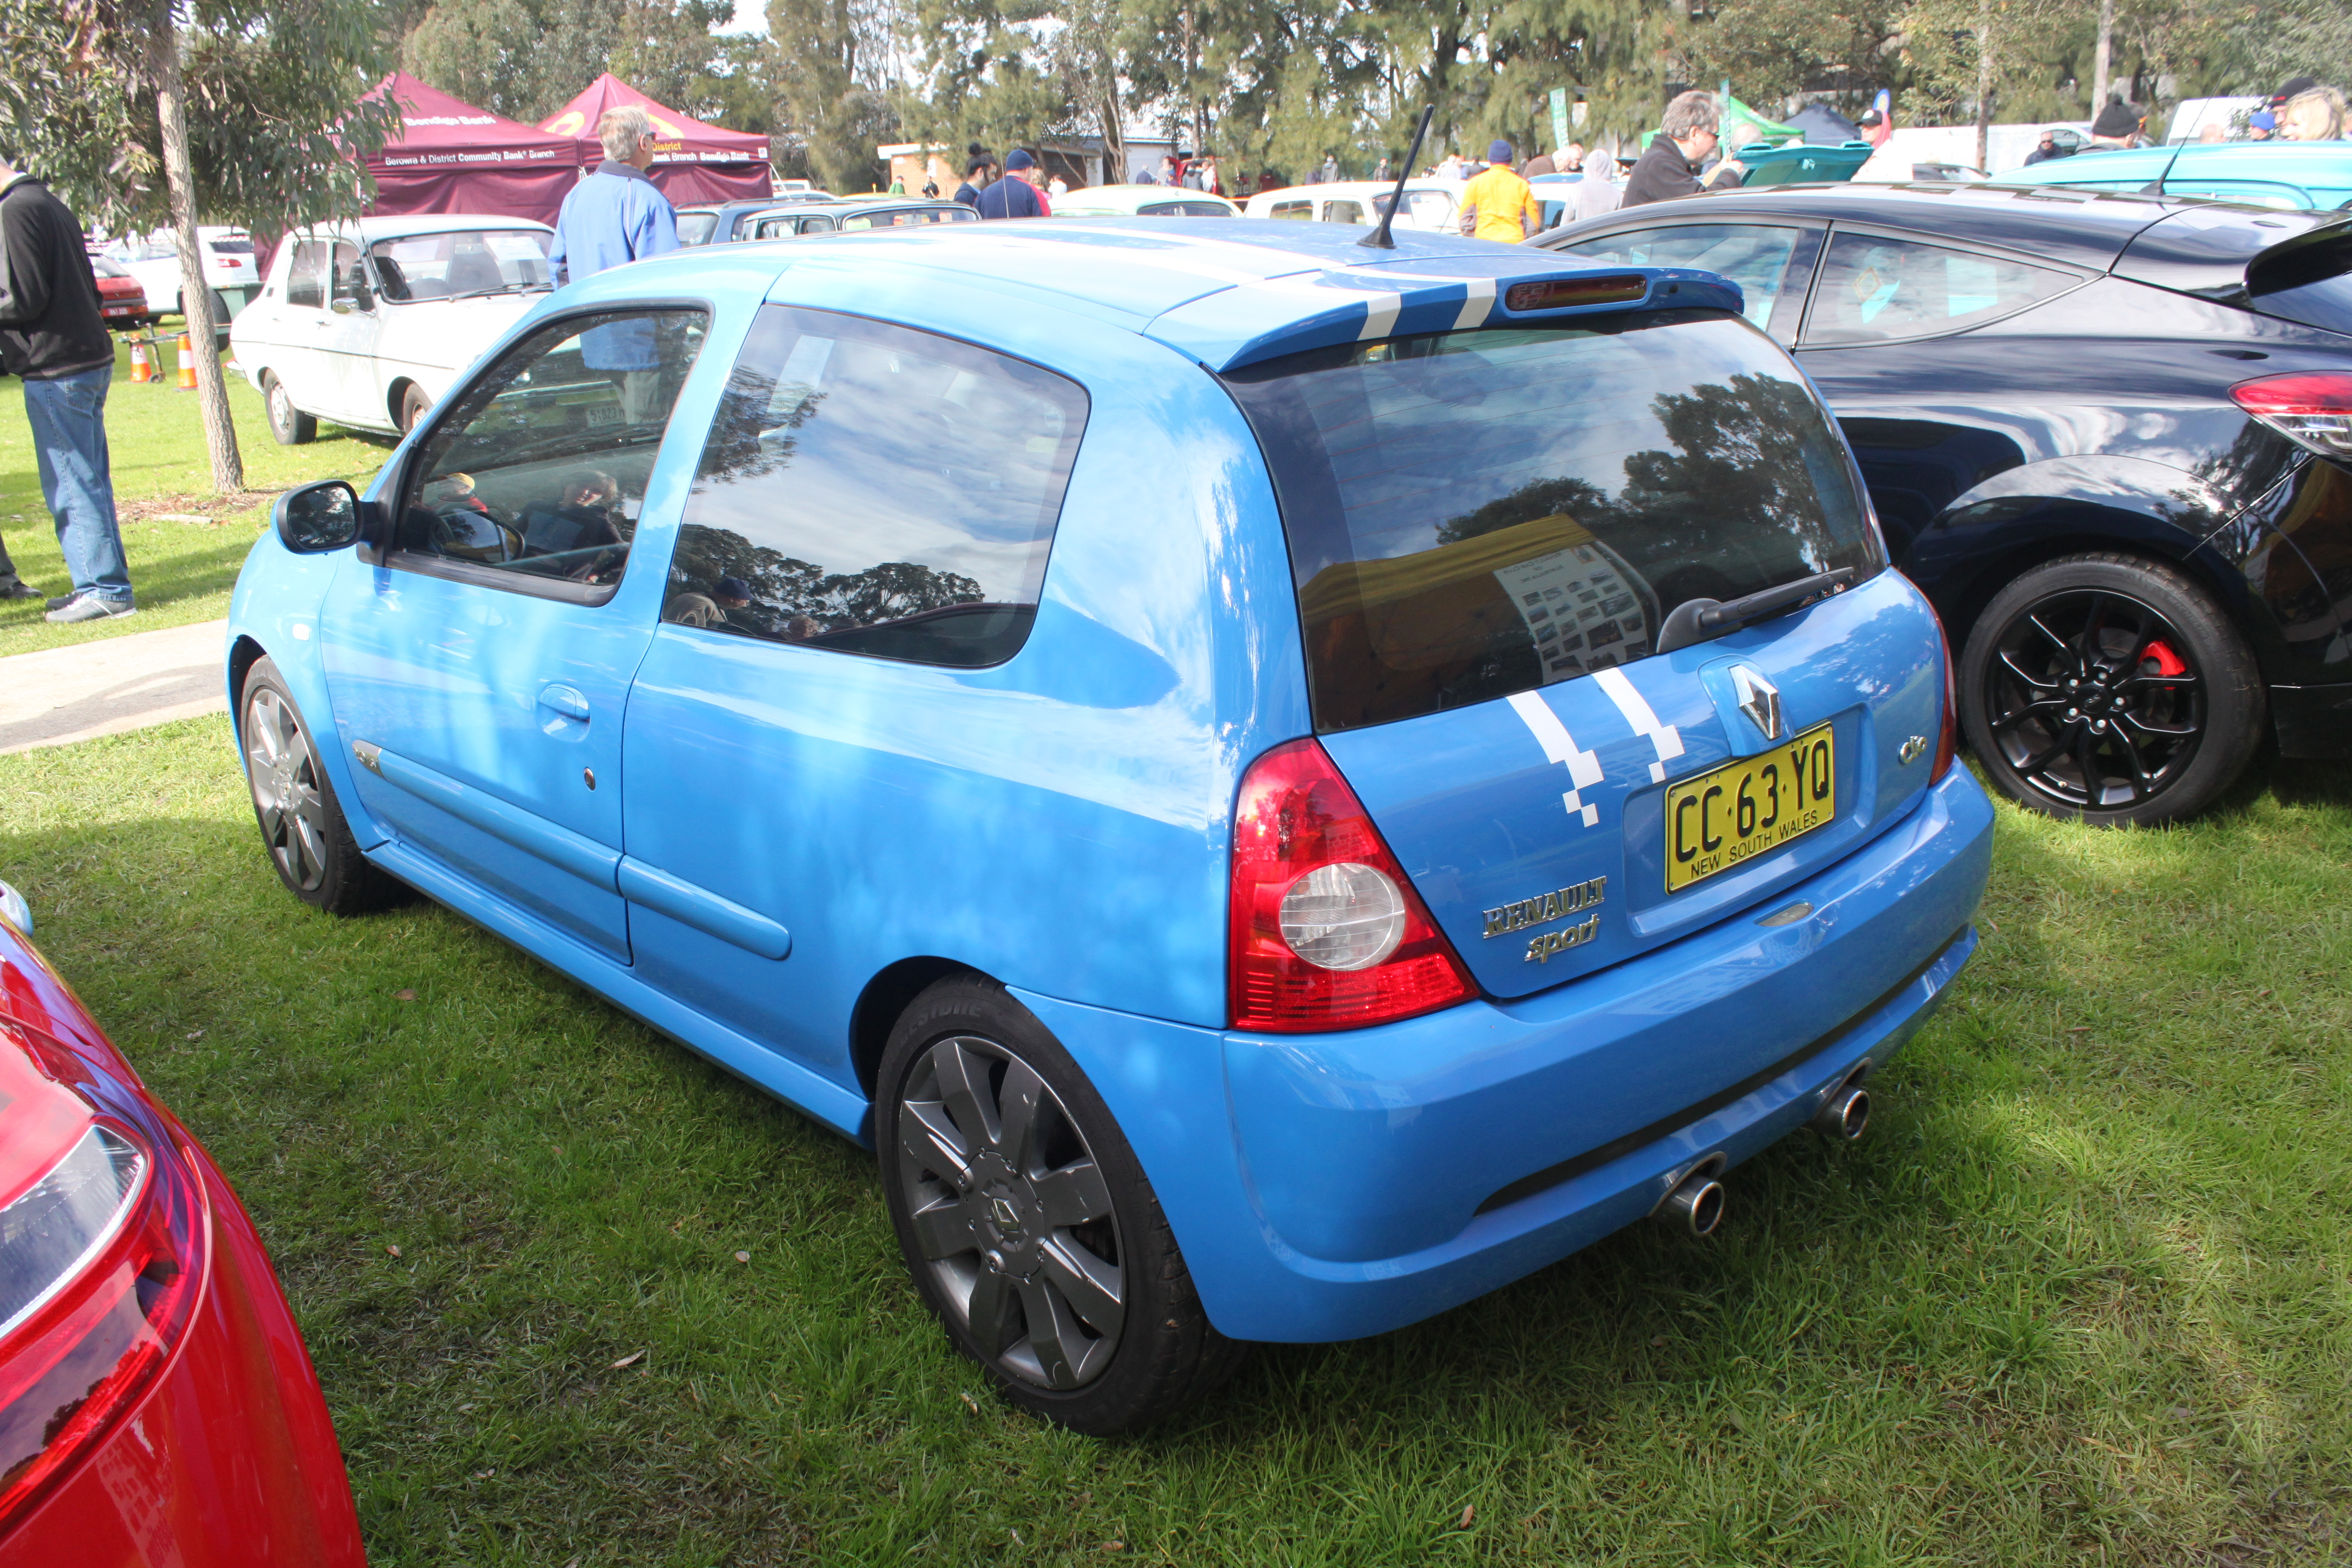 File 2005 2006 Renault Sport Clio X65 Phase 3 182 Cup F1 3 Door Hatchback 19750040320 Jpg Wikimedia Commons